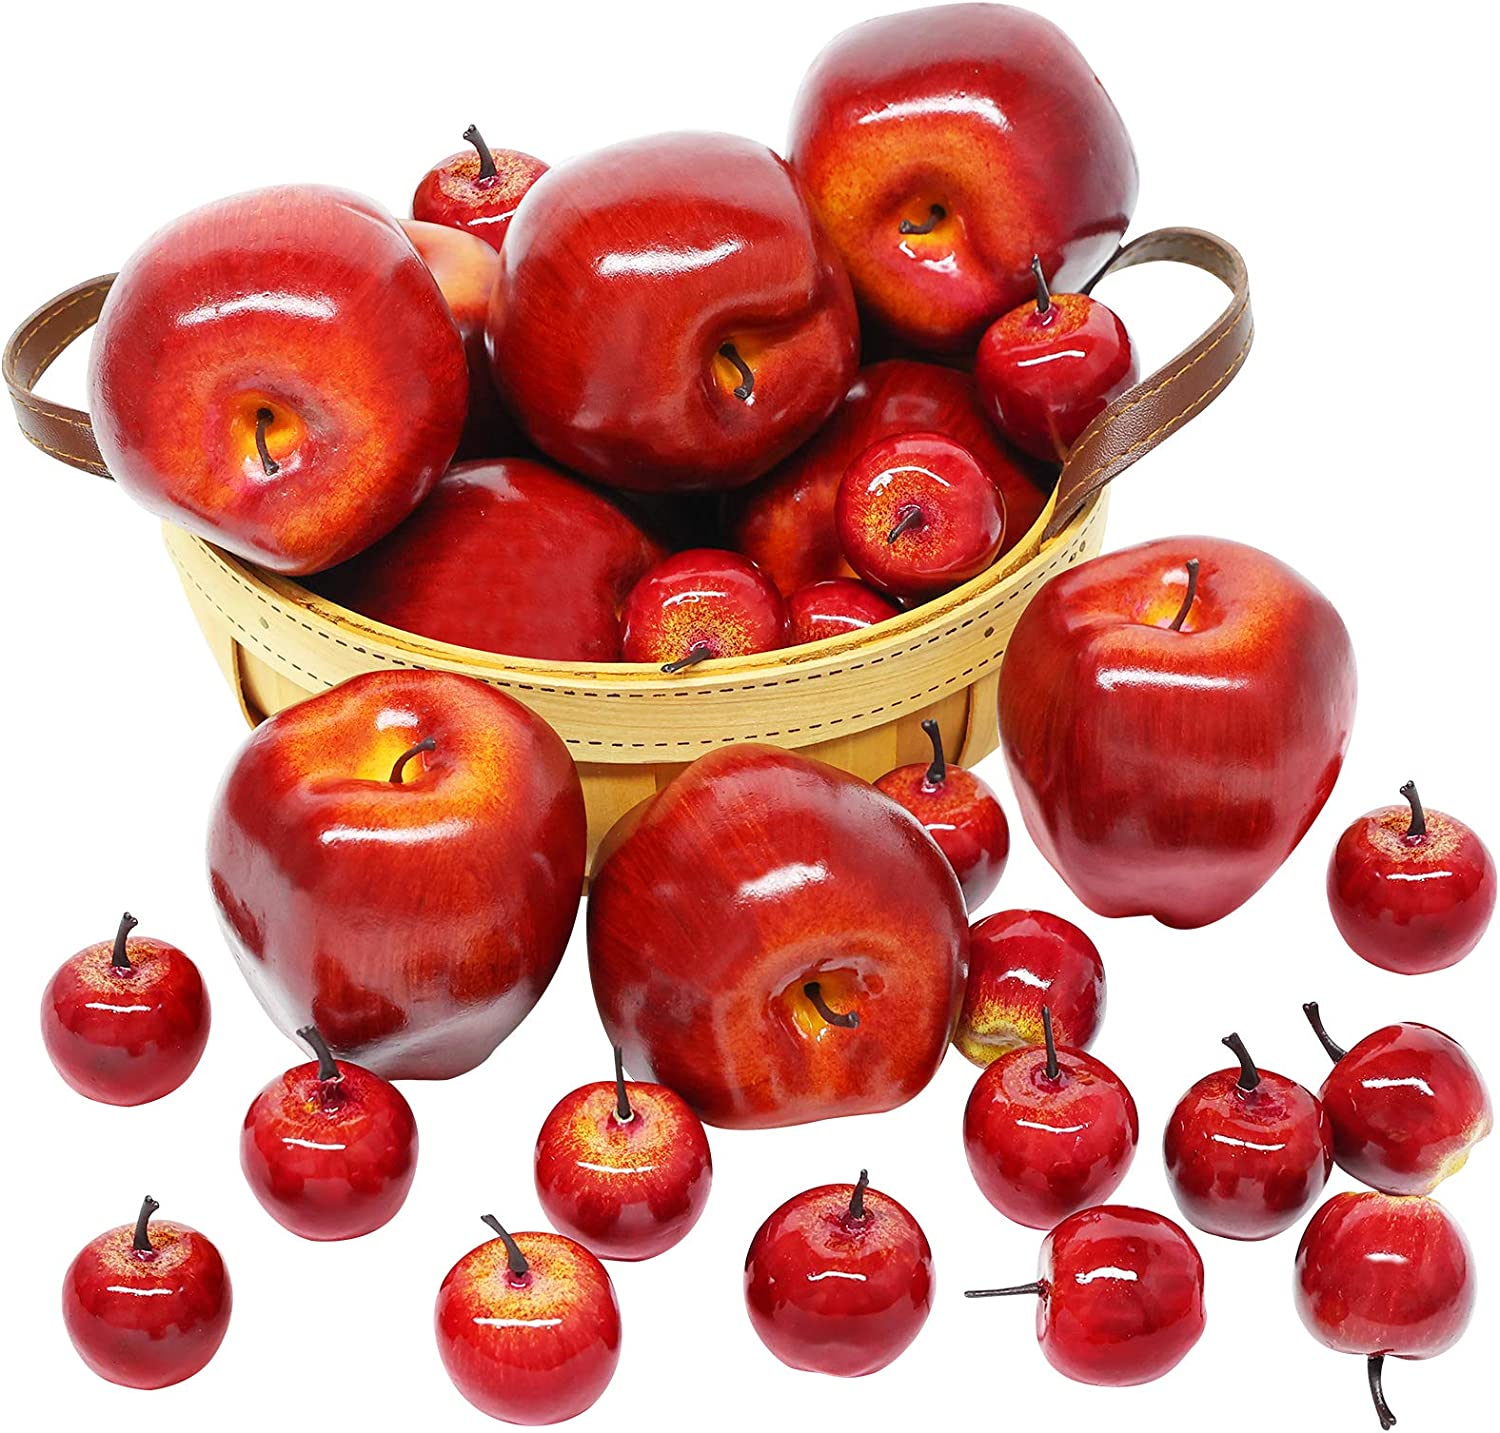 BigOtters Artificial Apples, 30PCS Fake Fruits Red Apples Dark Red Apple Lifelike Simulation for Home House Kitchen Table Basket Photography Party Decoration